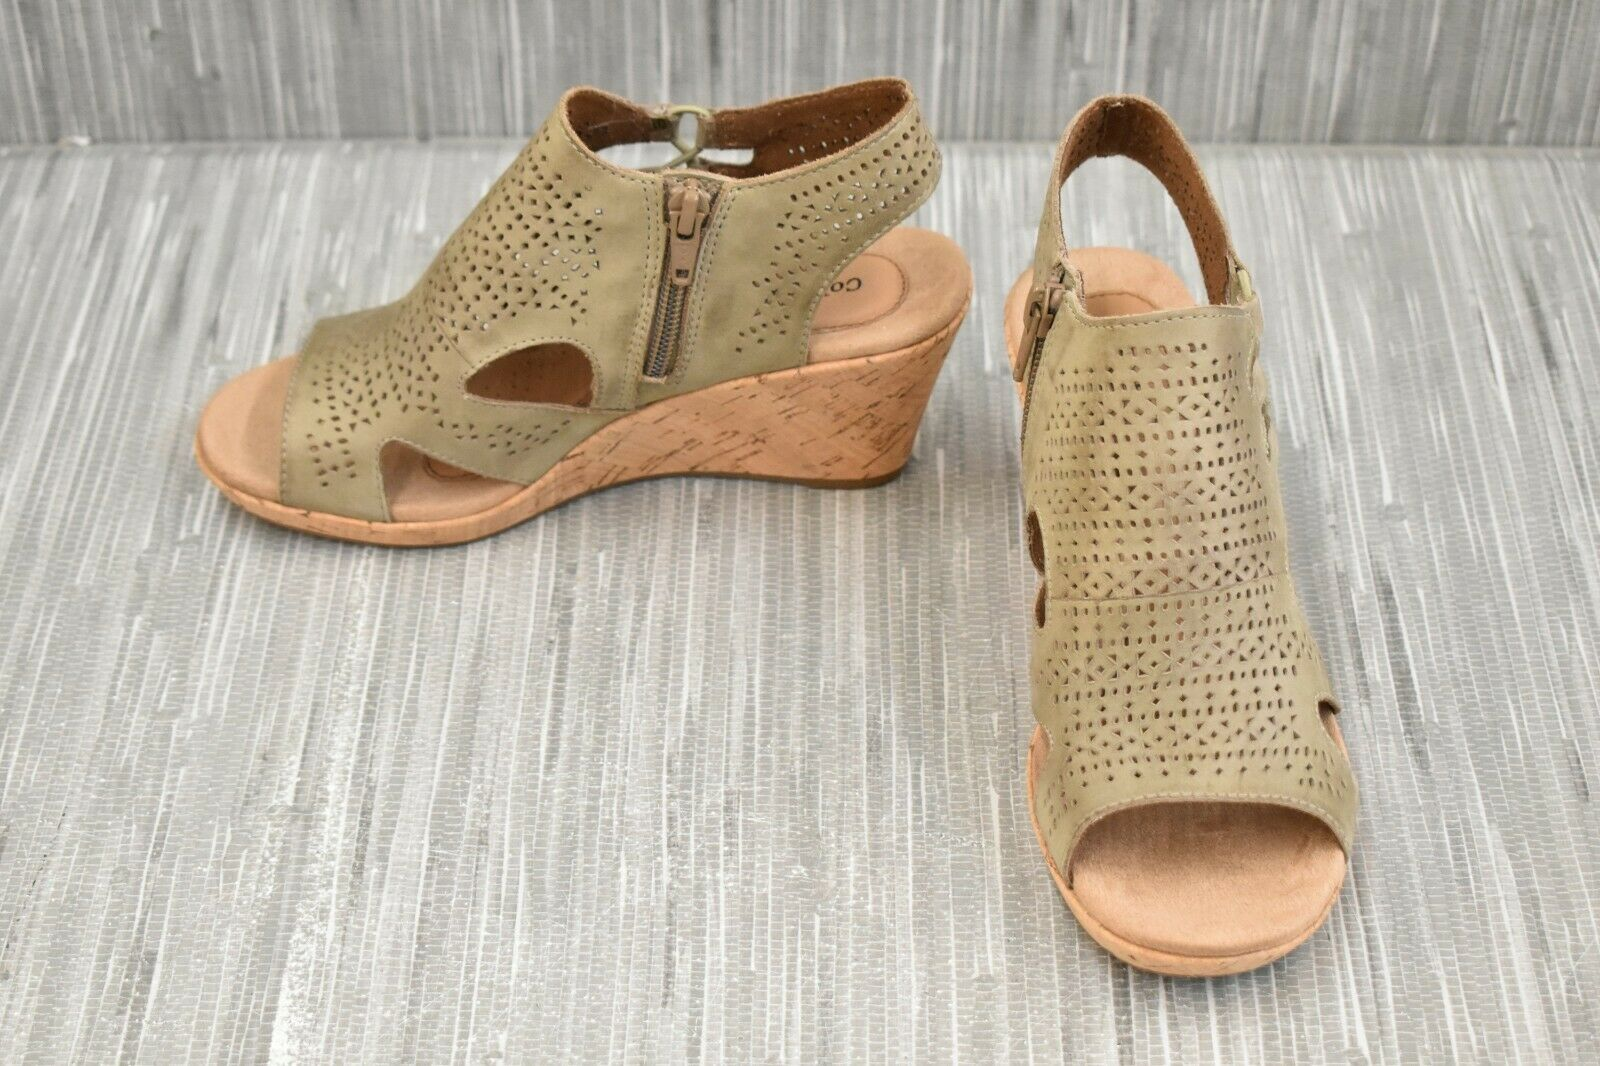 Cobb Hill Janna CH1881 Perforated Leather Booties, Women's Size 5.5M, Khaki NEW